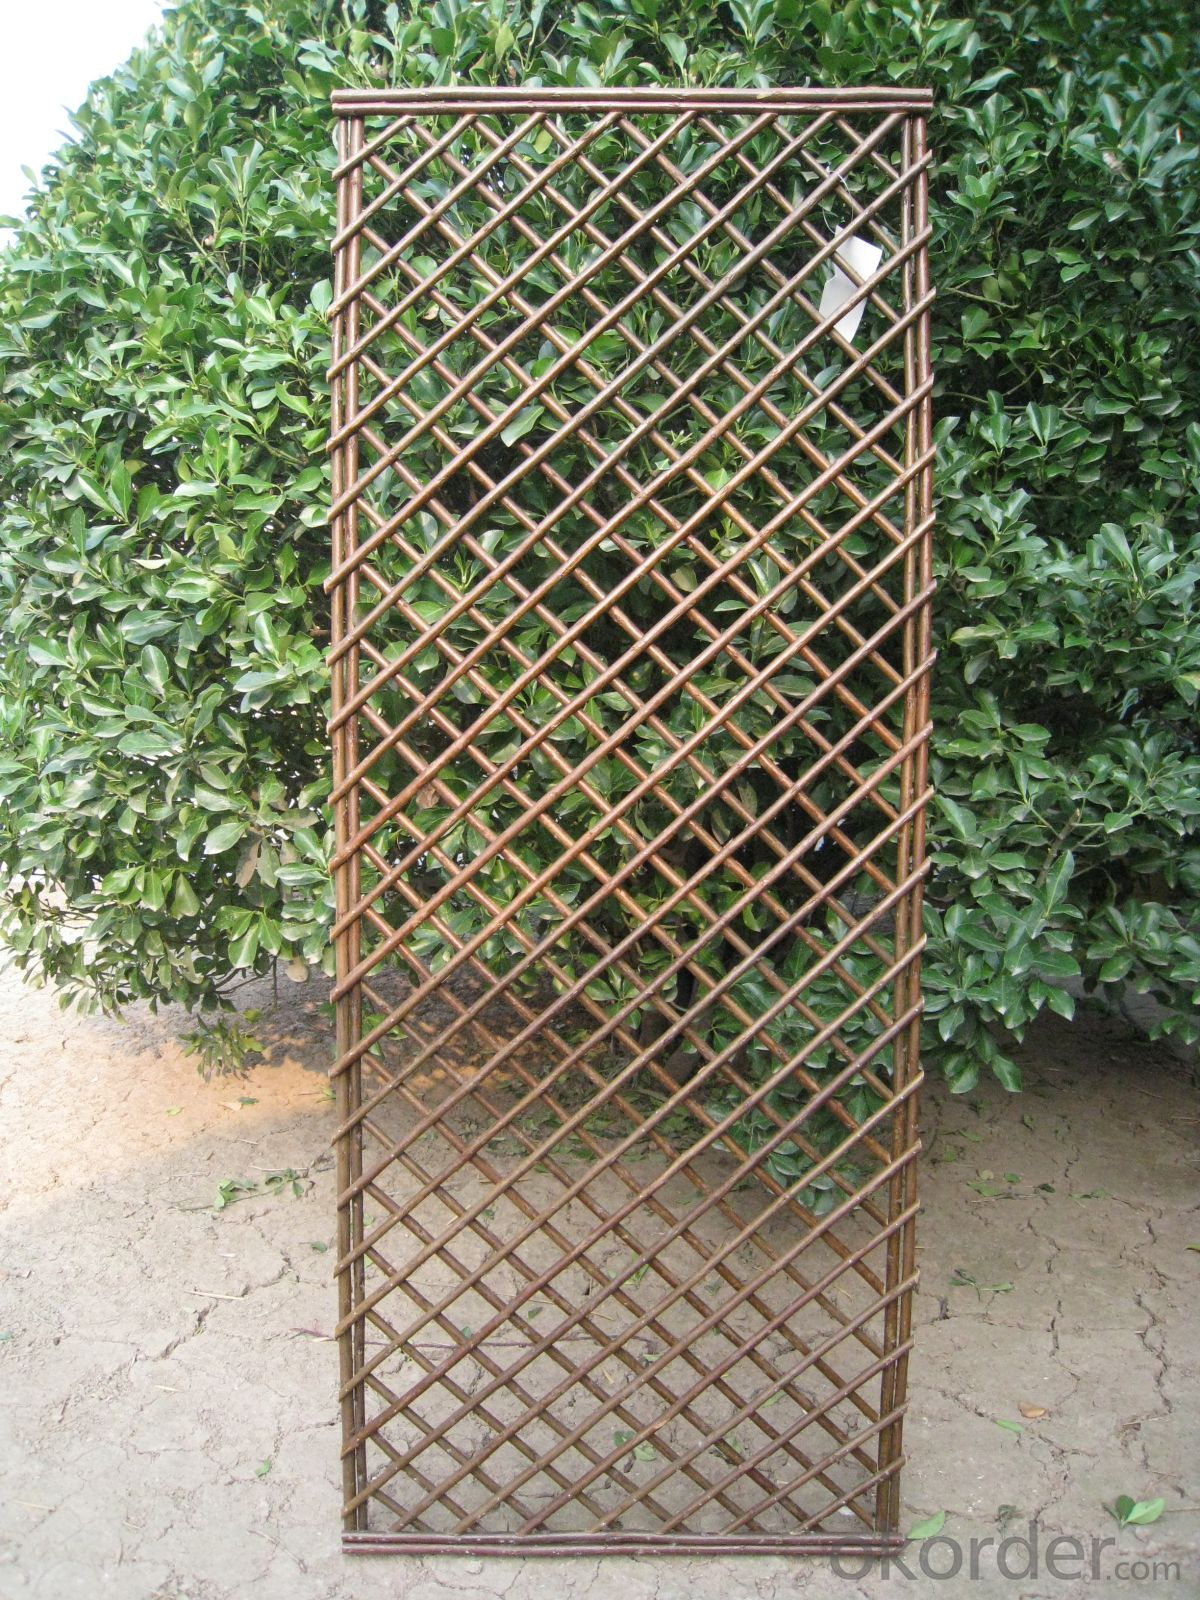 WICKER FENCING GARDEN DECORATION PANEL